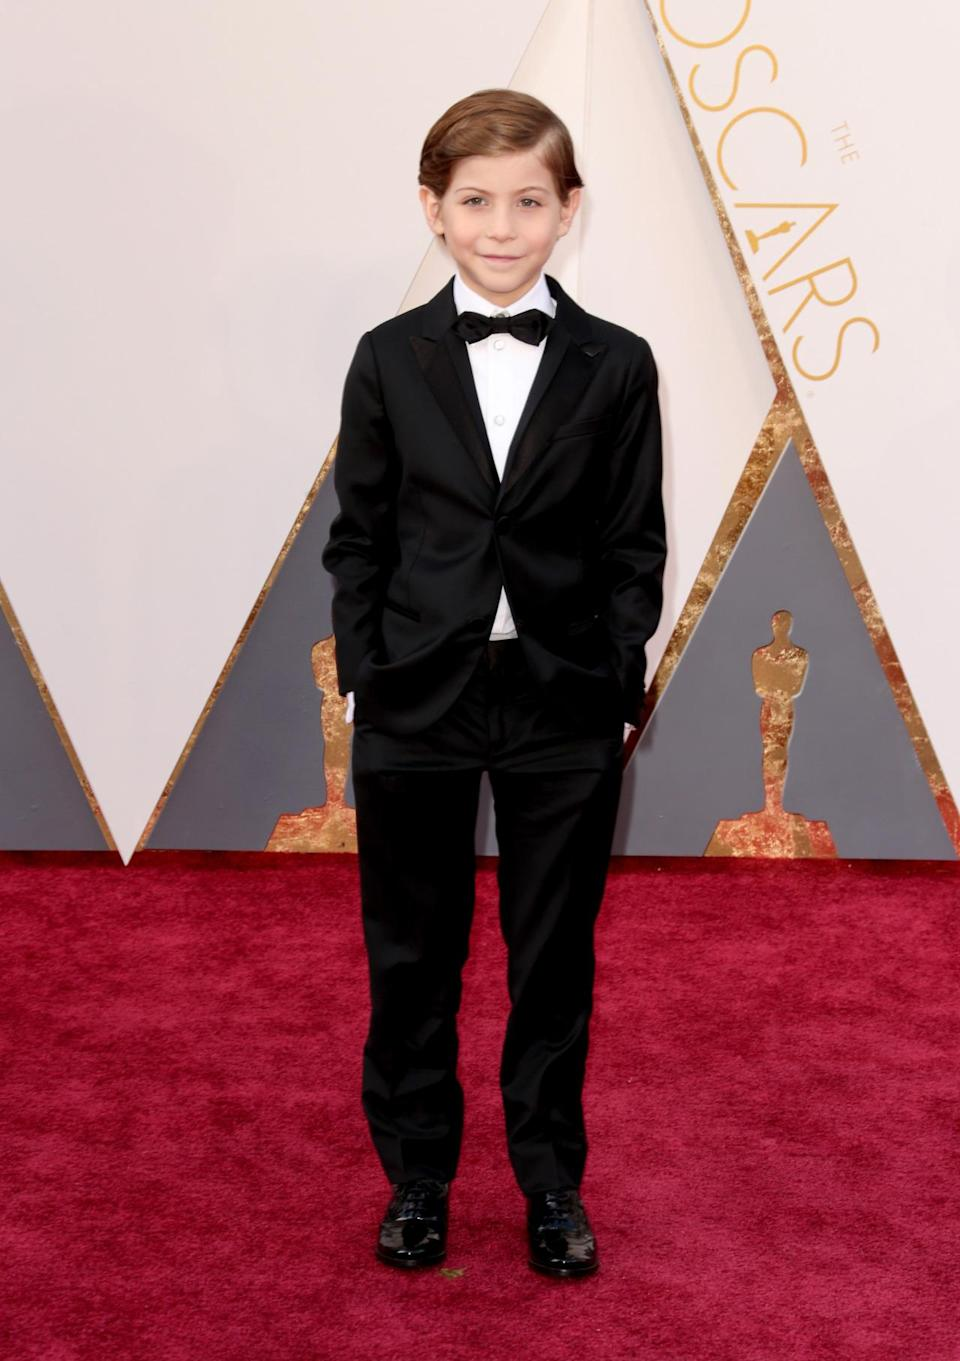 <p>Jacob Tremblay, who stole the show in Oscar-nominated film <i>Room,</i> was a red carpet winner in an Armani tuxedo and <i>Star Wars</i>-themed cuff links. <i><i>(Photo: Getty Images)</i></i></p>